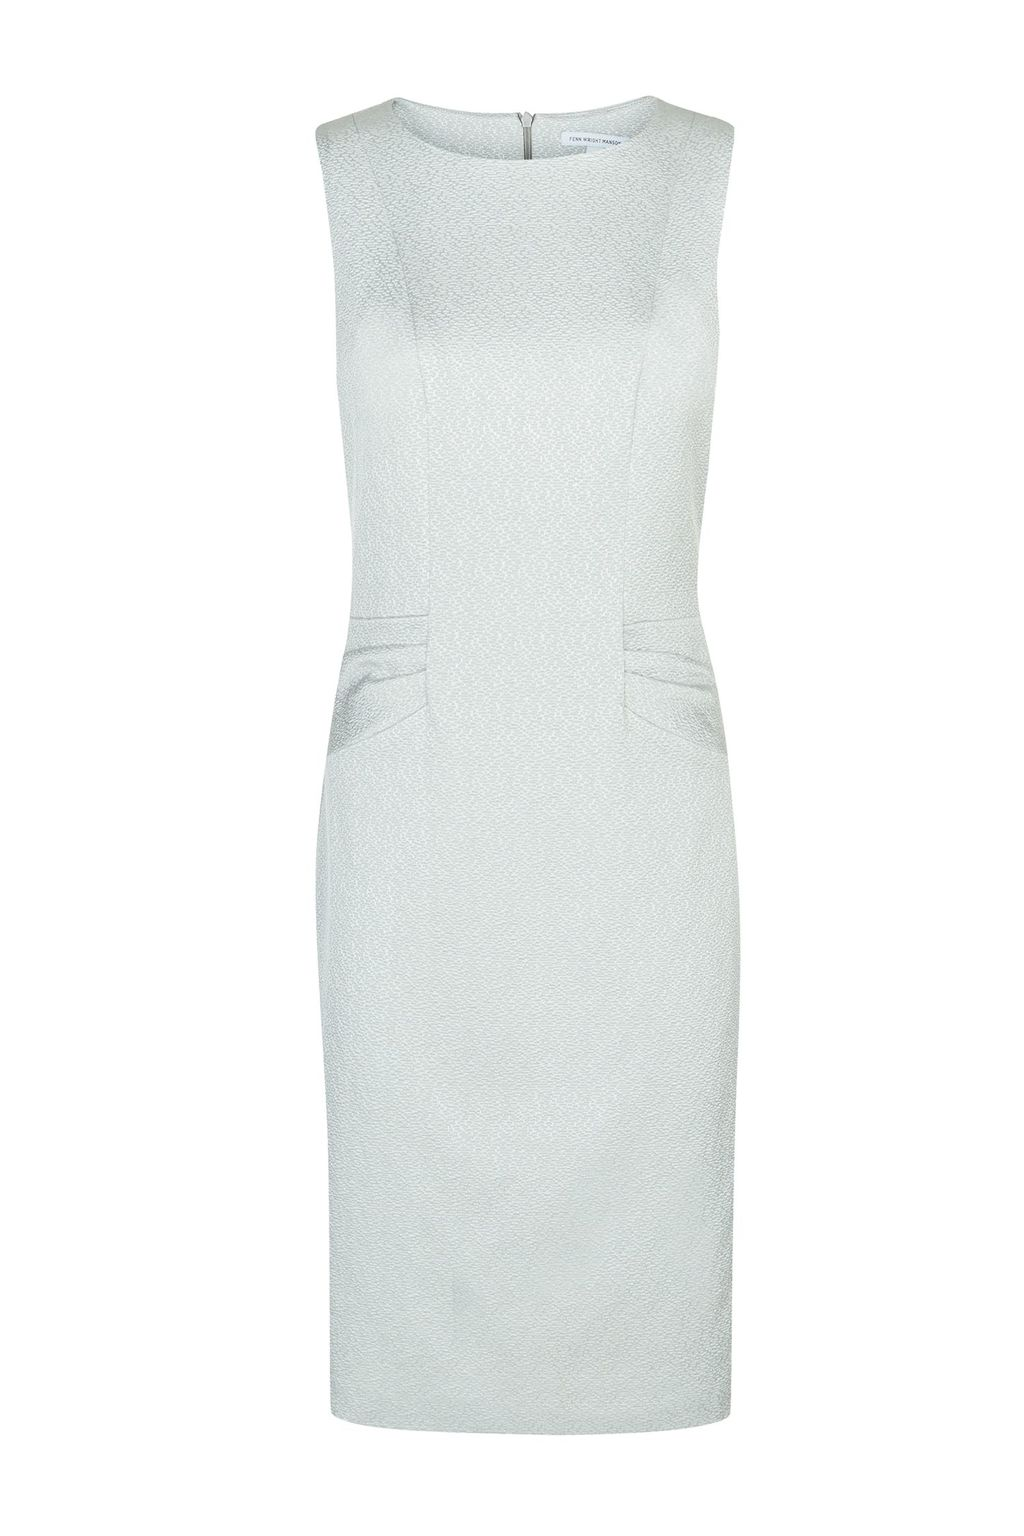 Fuji Dress, Grey - style: shift; neckline: round neck; pattern: plain; sleeve style: sleeveless; predominant colour: light grey; length: just above the knee; fit: body skimming; fibres: polyester/polyamide - mix; occasions: occasion; sleeve length: sleeveless; pattern type: fabric; texture group: jersey - stretchy/drapey; season: a/w 2015; wardrobe: event